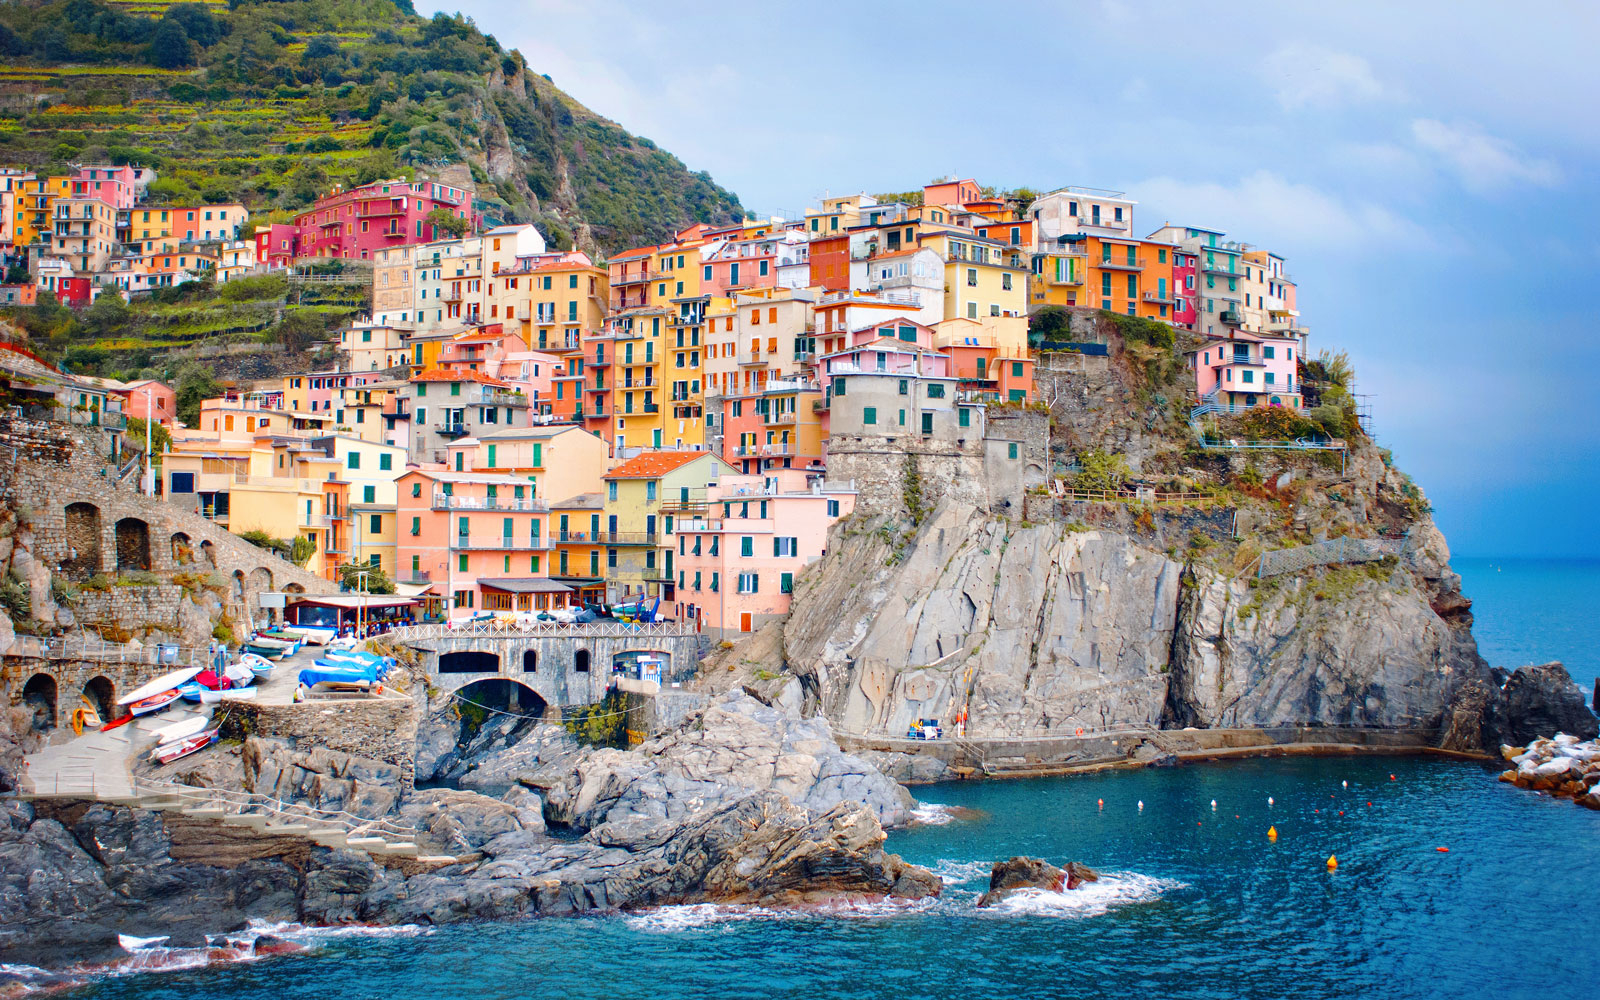 The Most Beautiful Coastal Towns | Travel + Leisure